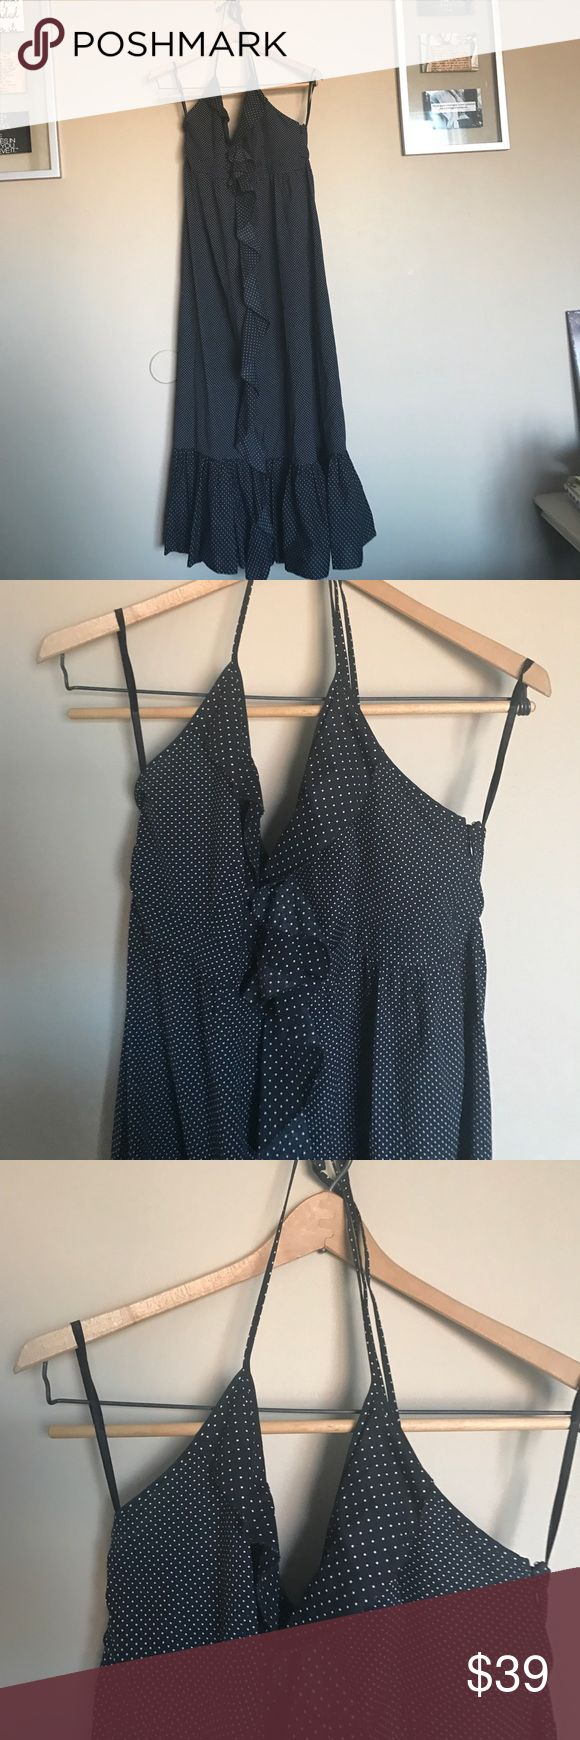 J Crew black polka dot ruffled festival dress J Crew black and white polka dot ruffled festival dress. Maxi type, mid calf dress with ruffled detail front and halter tie. Excellent condition. Two sizes of white polka dots on black based  Halter dress with spaghetti straps. Maxi that hit mid length A wide ruffle extends from the mid-bust line to the hem Unlined Hidden side zipper Great condition, free of tears, spots, and stains. No flaws. J. Crew Dresses Maxi